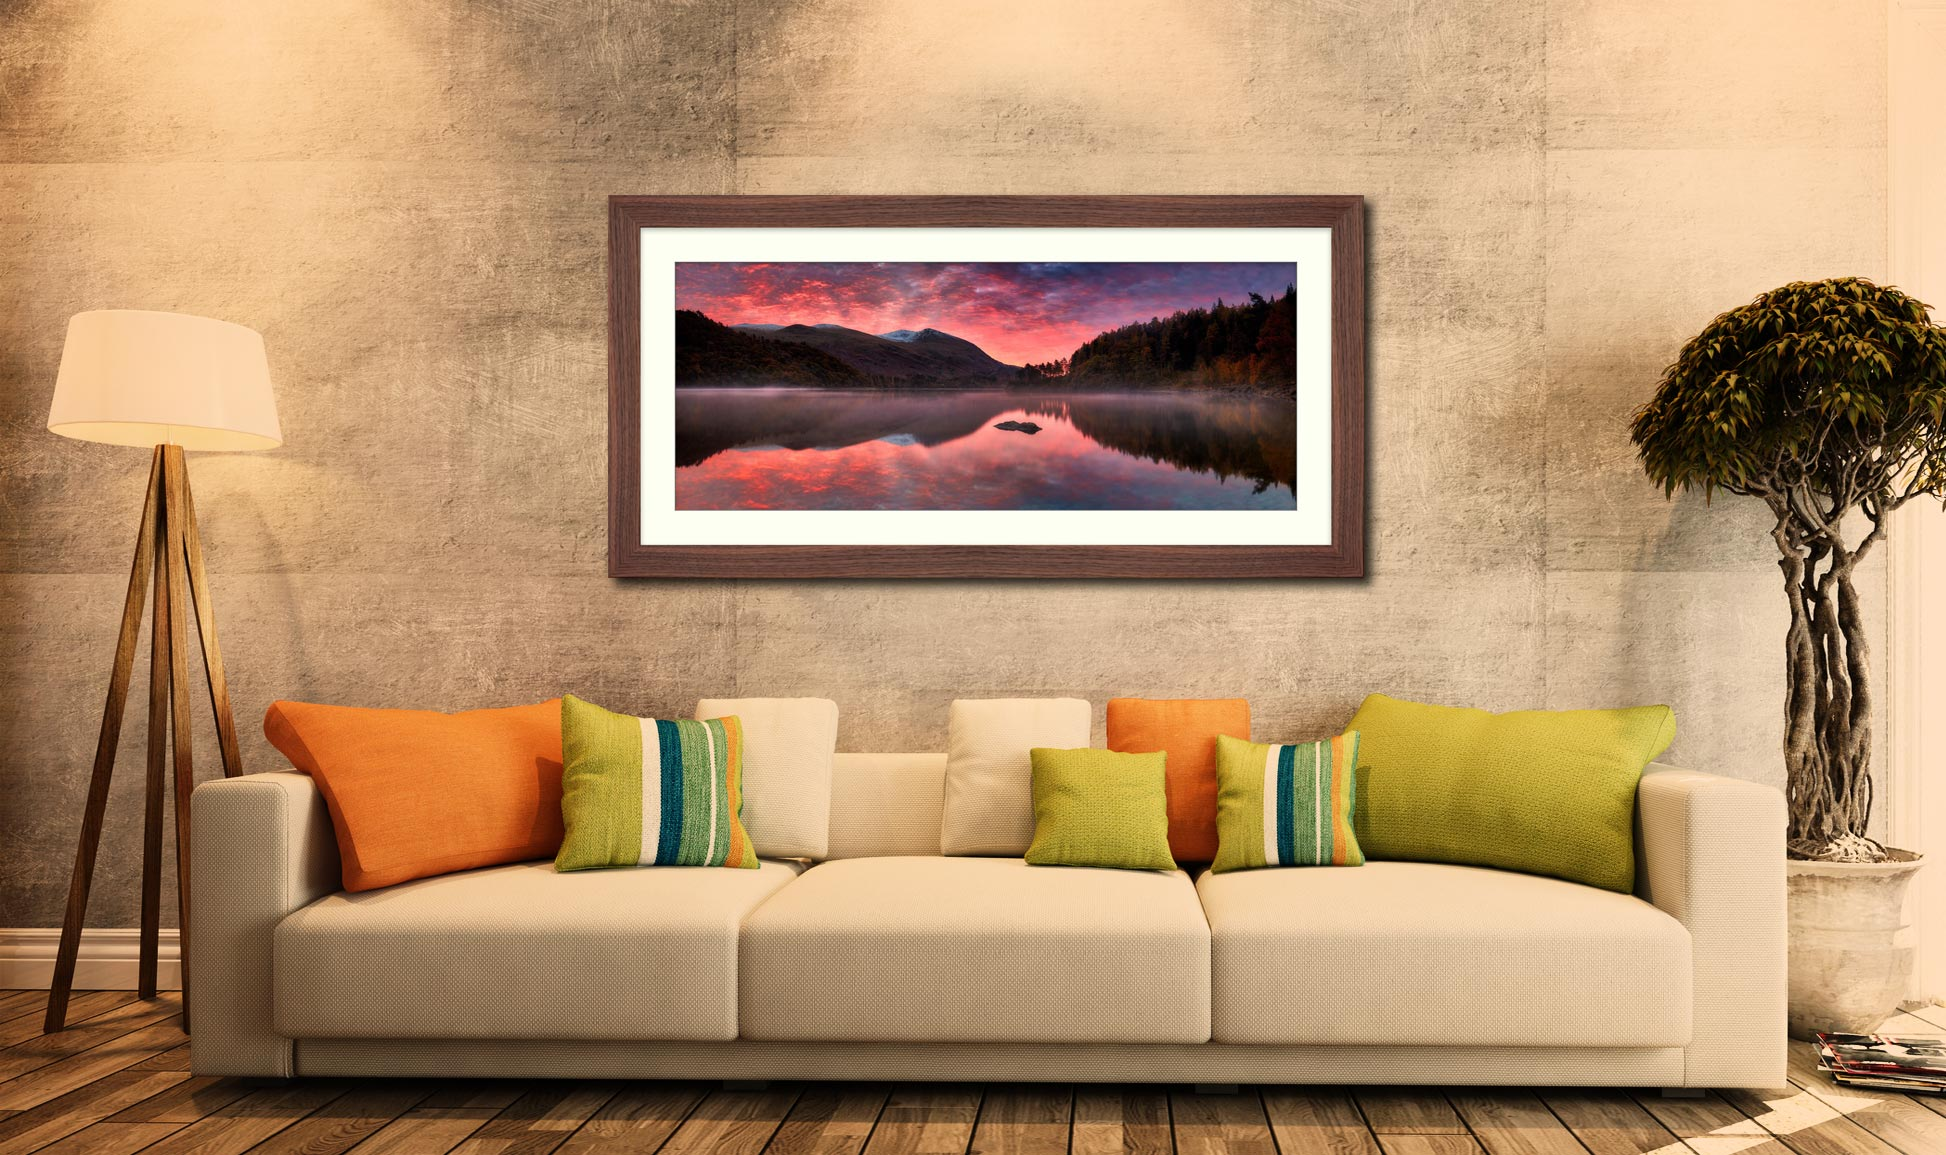 Thirlmere Autumn Sunrise - Framed Print with Mount on Wall